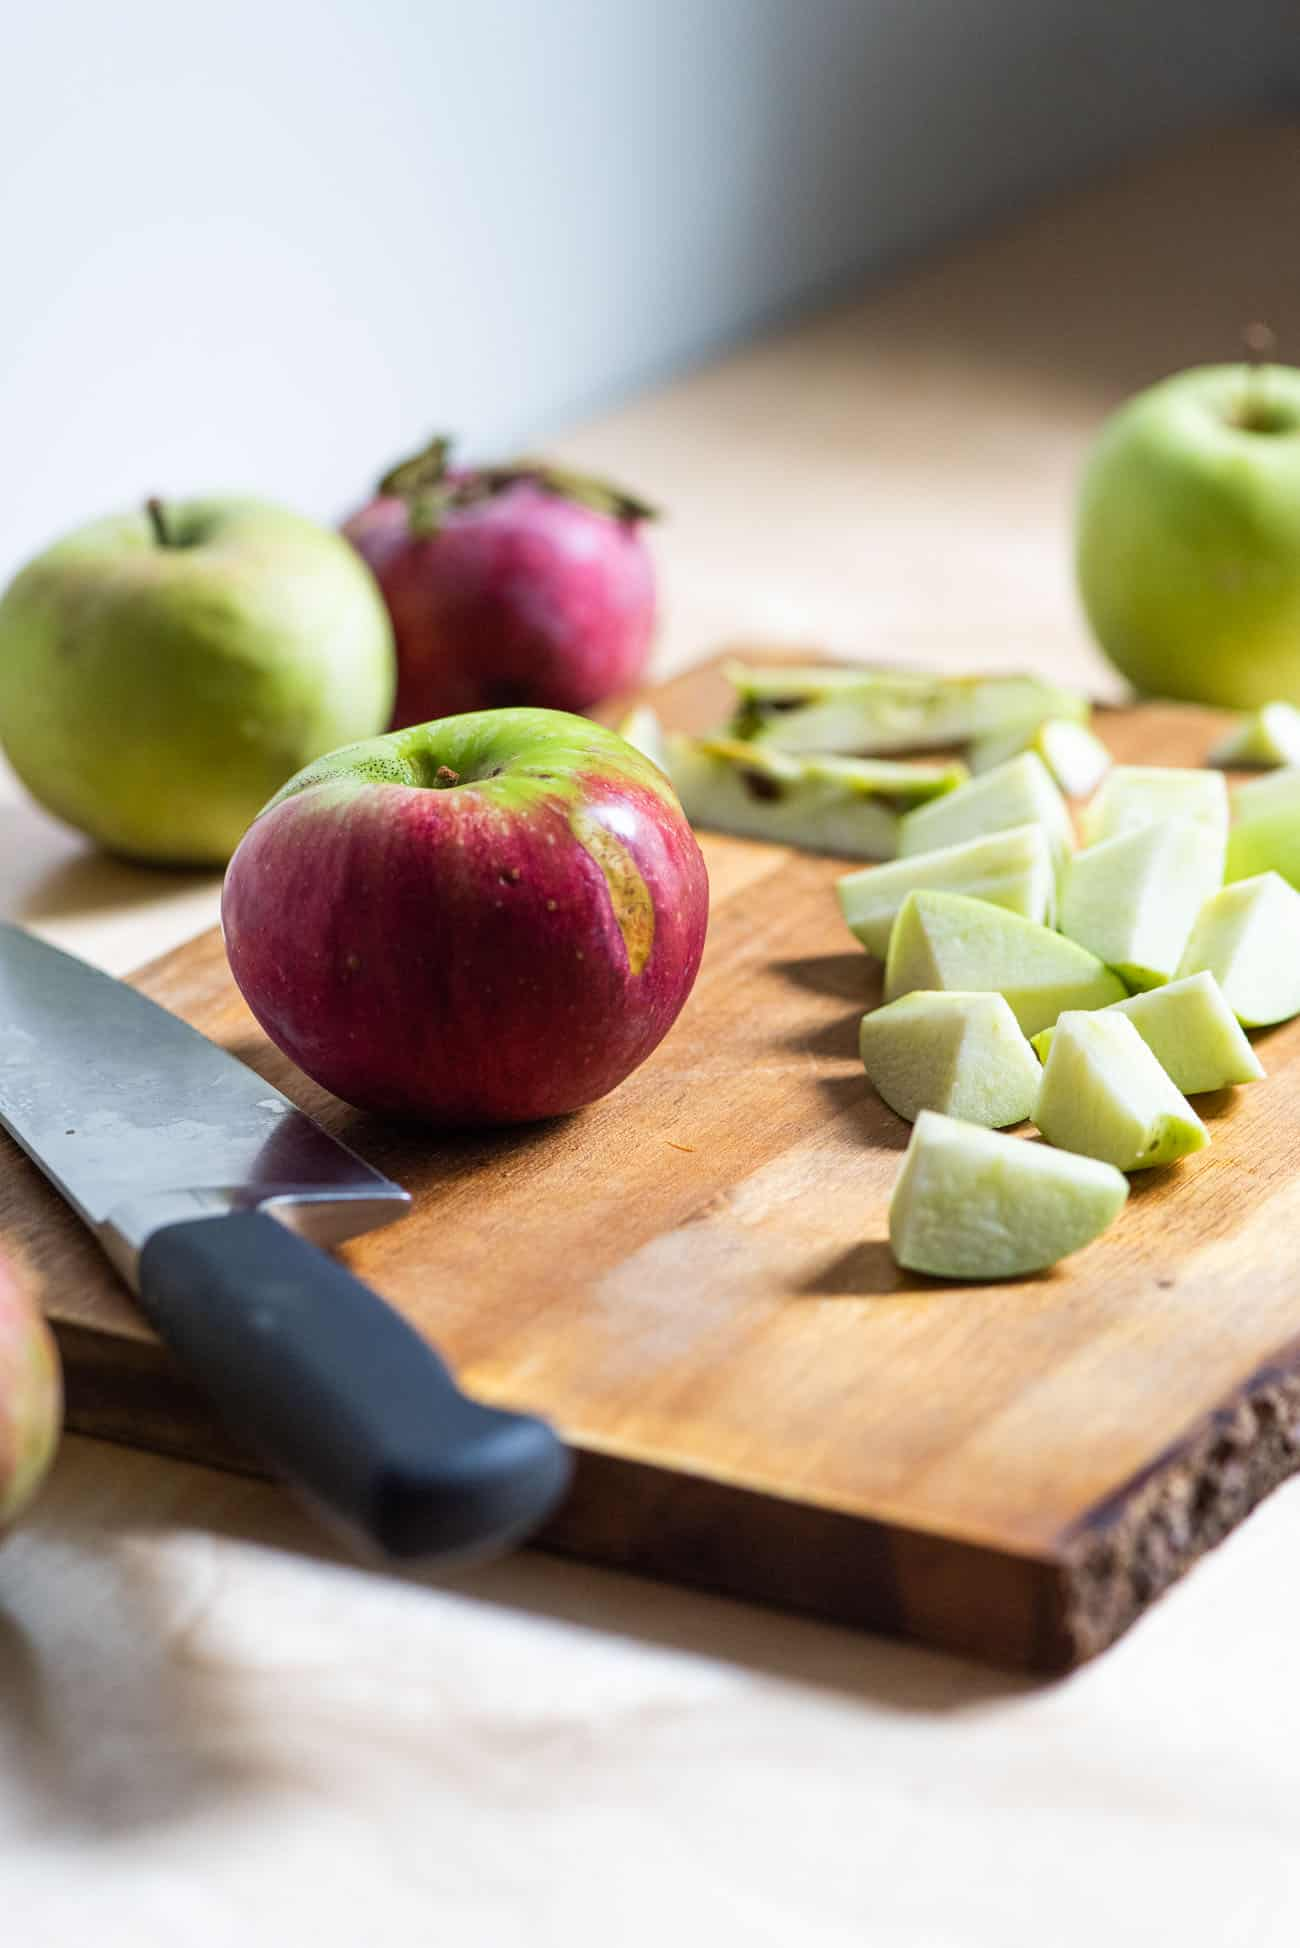 Chopped apples on a cutting board on a wooden kitchen counter